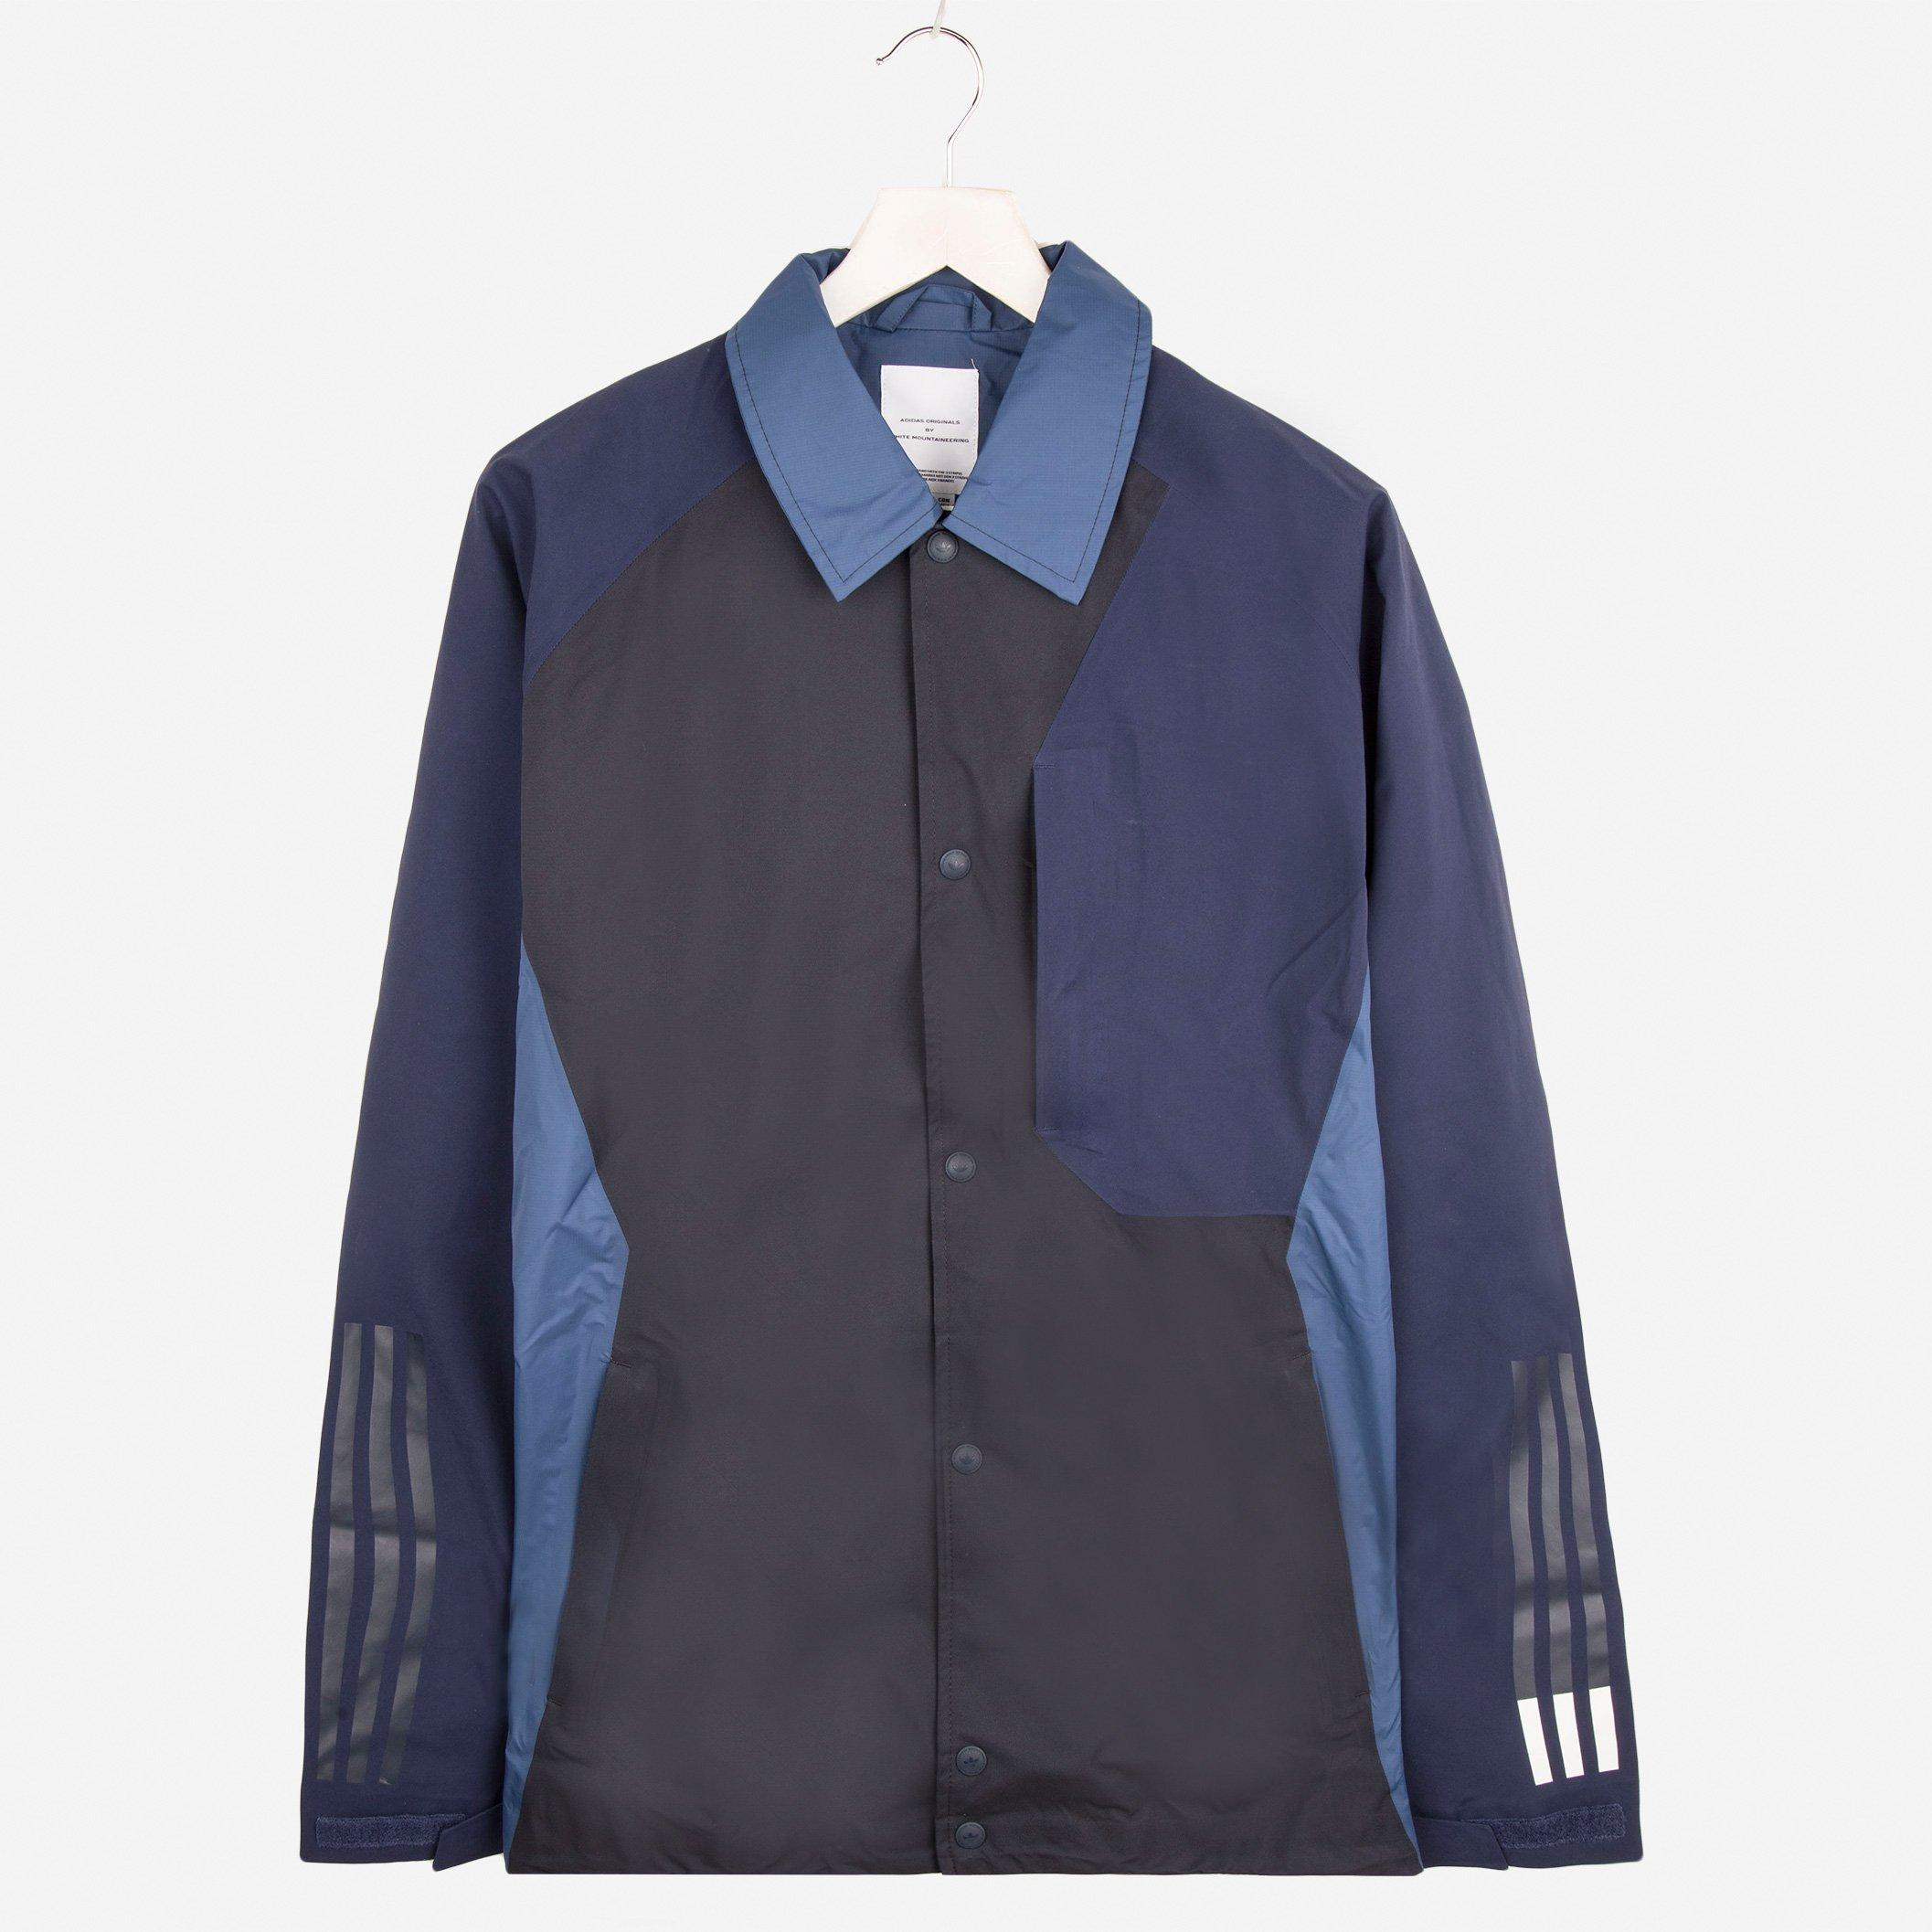 adidas Originals x White Mountaineering Bench Jacket